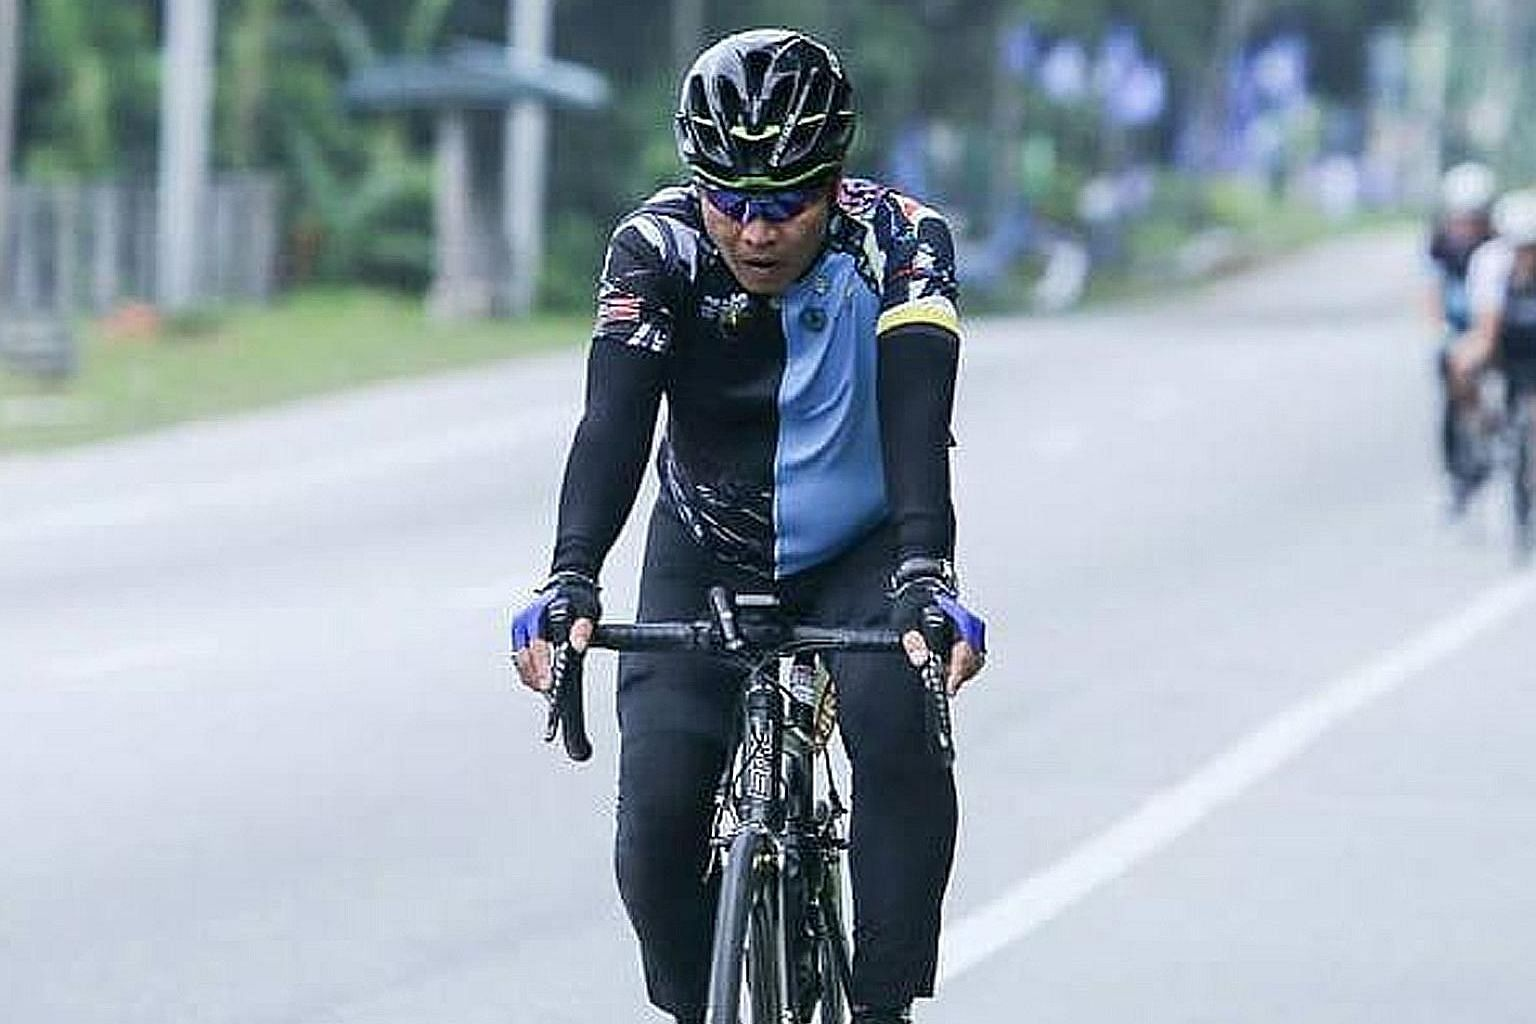 Mr Abdul Samat Ismail had gone to Ipoh to take part in a race on Sunday with about 20 other Singaporean cyclists. He was last seen at 1.45pm at a water station 24km from the finish line.